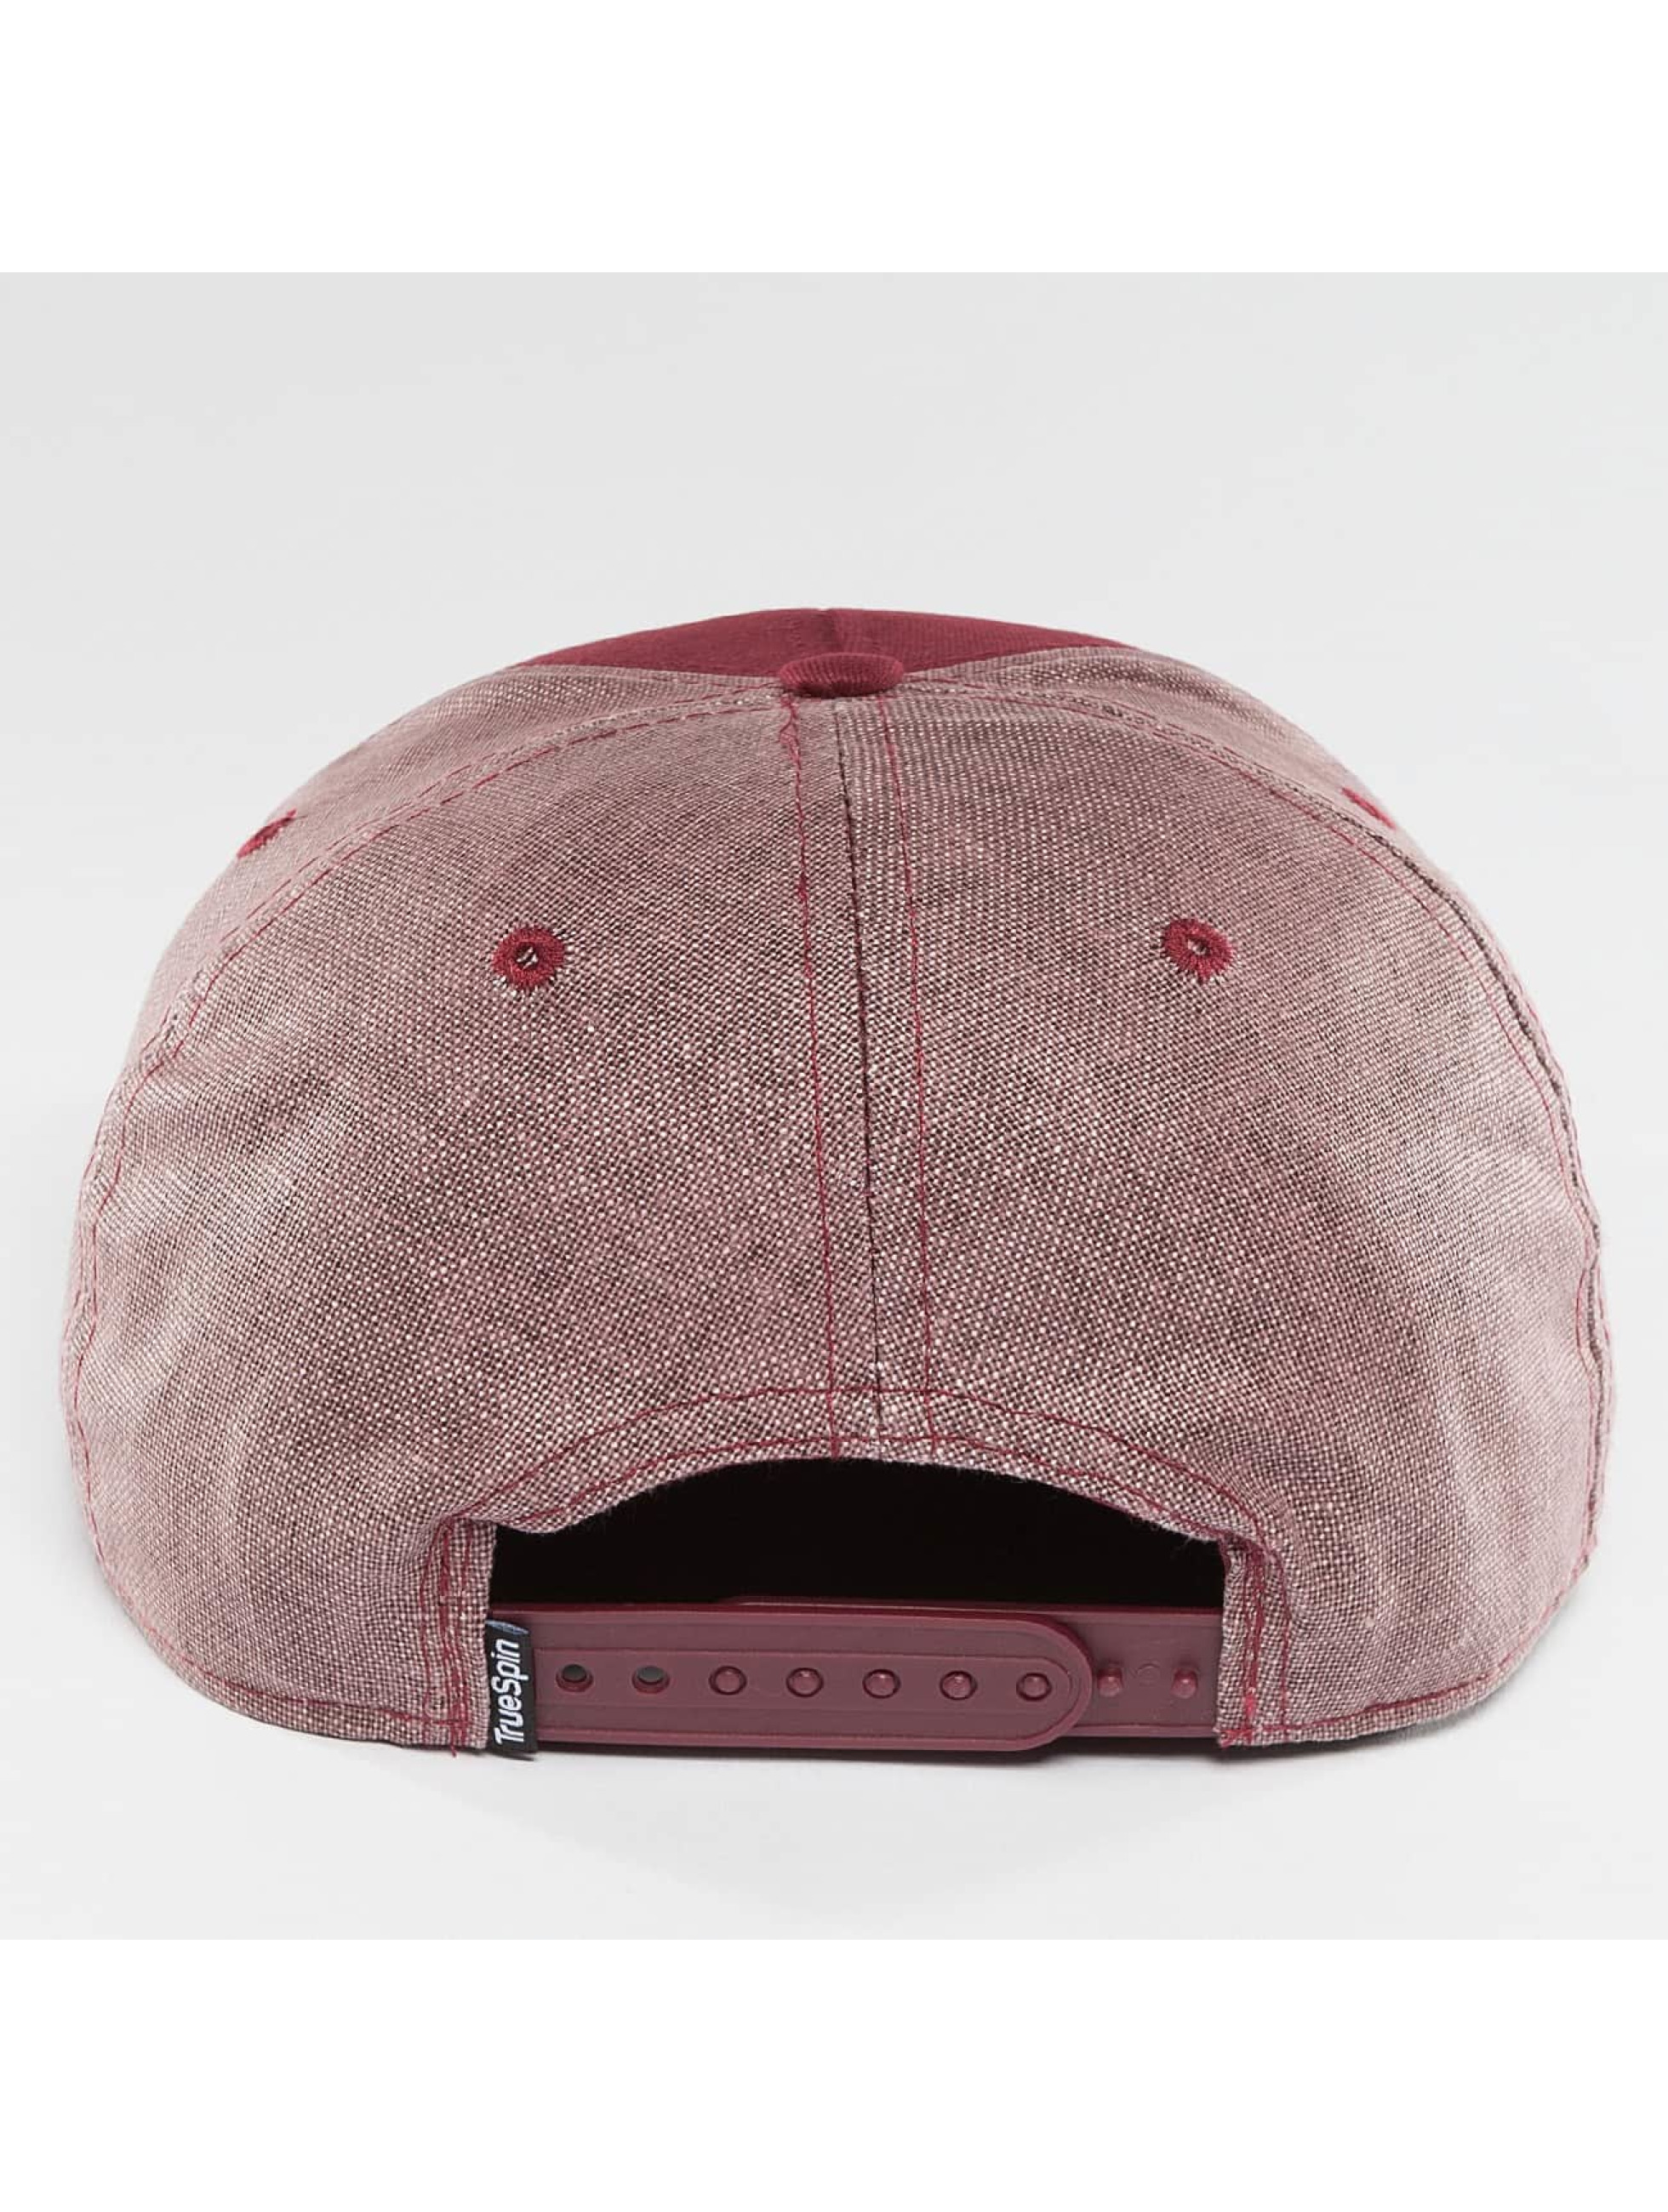 TrueSpin Snapback Caps New Velevet red